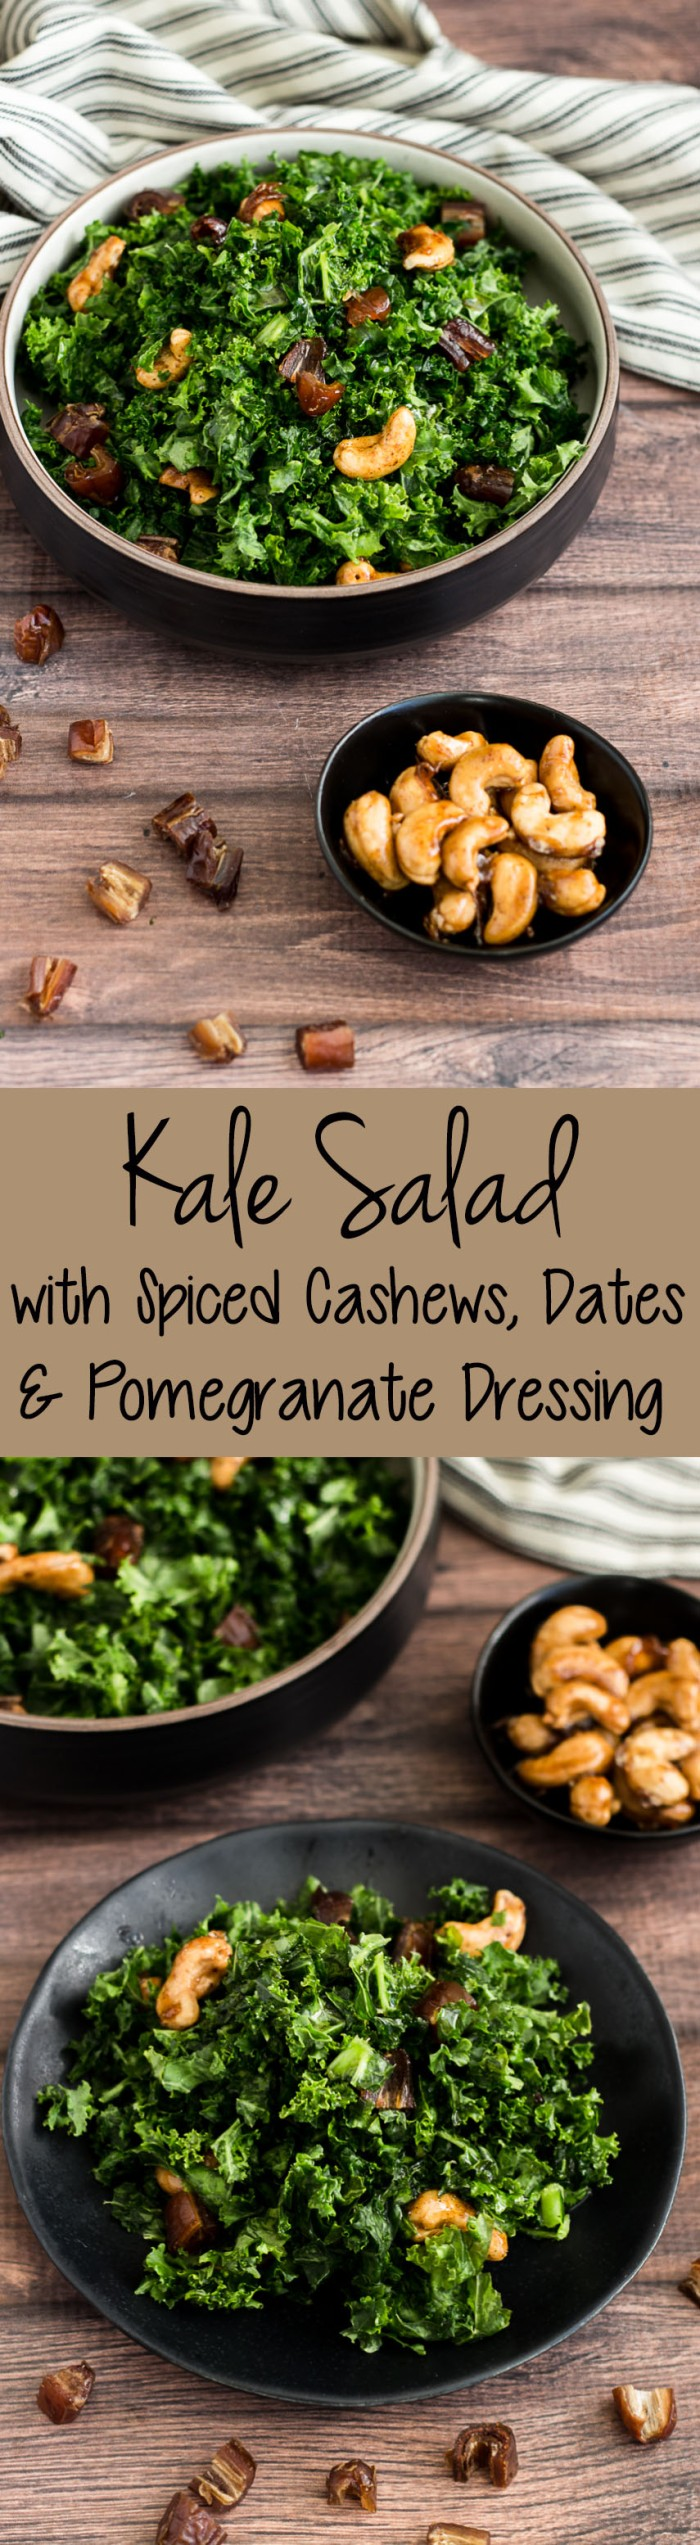 Kale Salad with Spiced Maple Cashews, Dates and Pomegranate Molasses Dressing